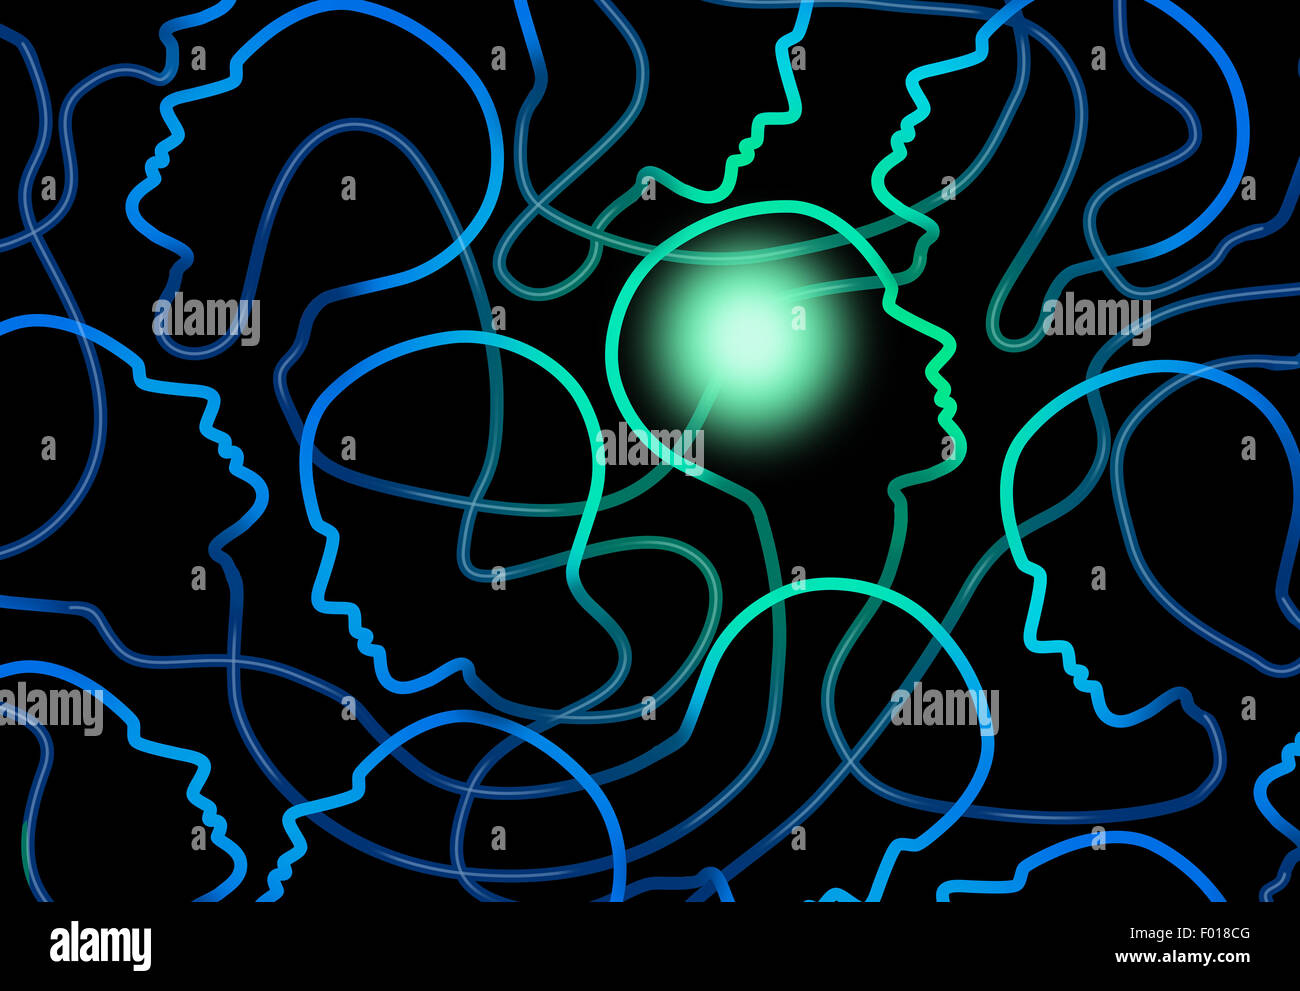 Social psychology concept as a group of connected network of people icons with one individual brain illuminated - Stock Image